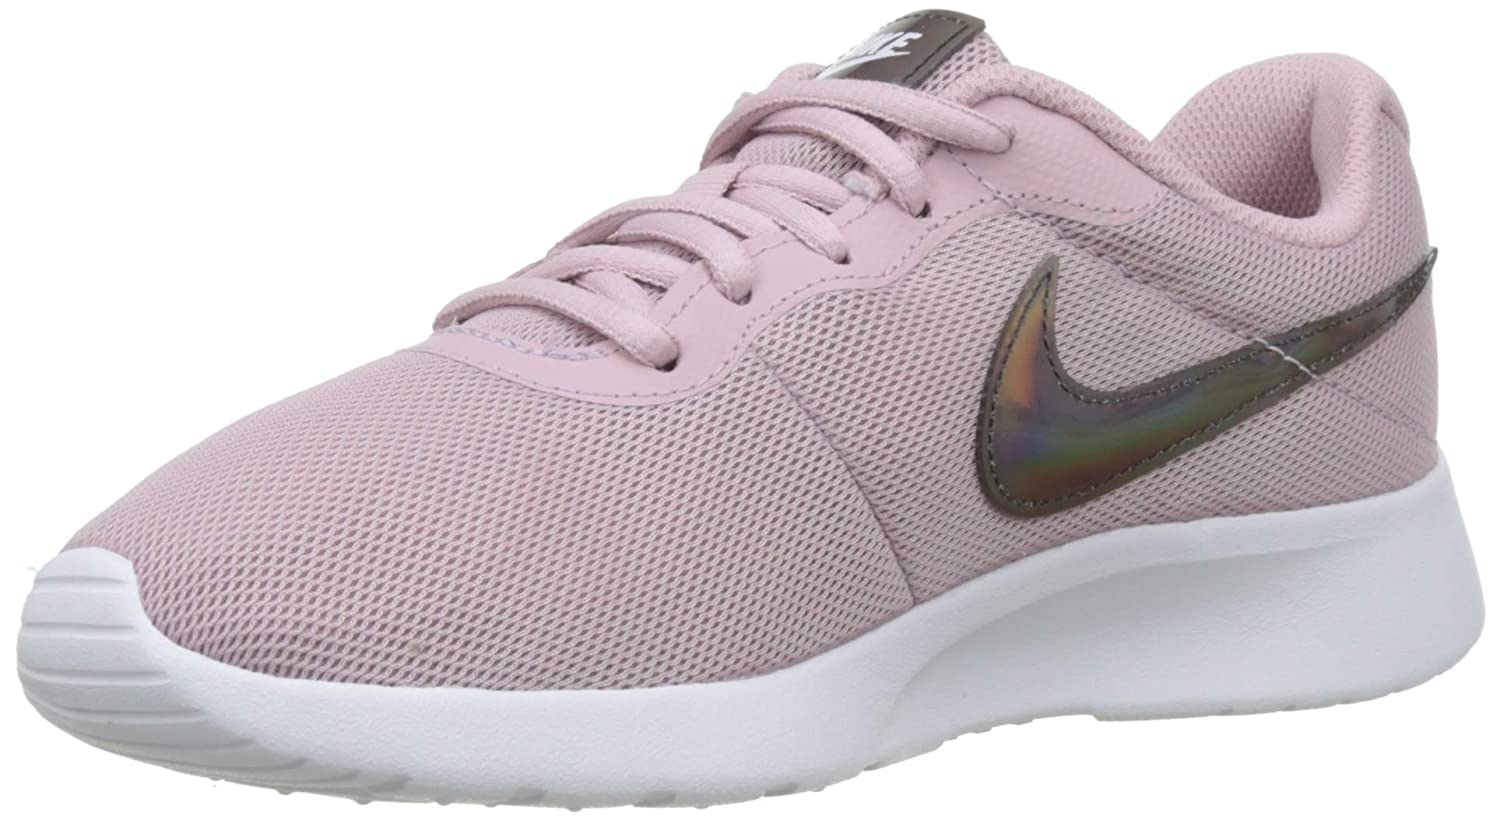 the latest 6df3f 8747f Amazon.com   Nike Women s Tanjun Shoe Plum Chalk White Size 8.5 M US    Sandals